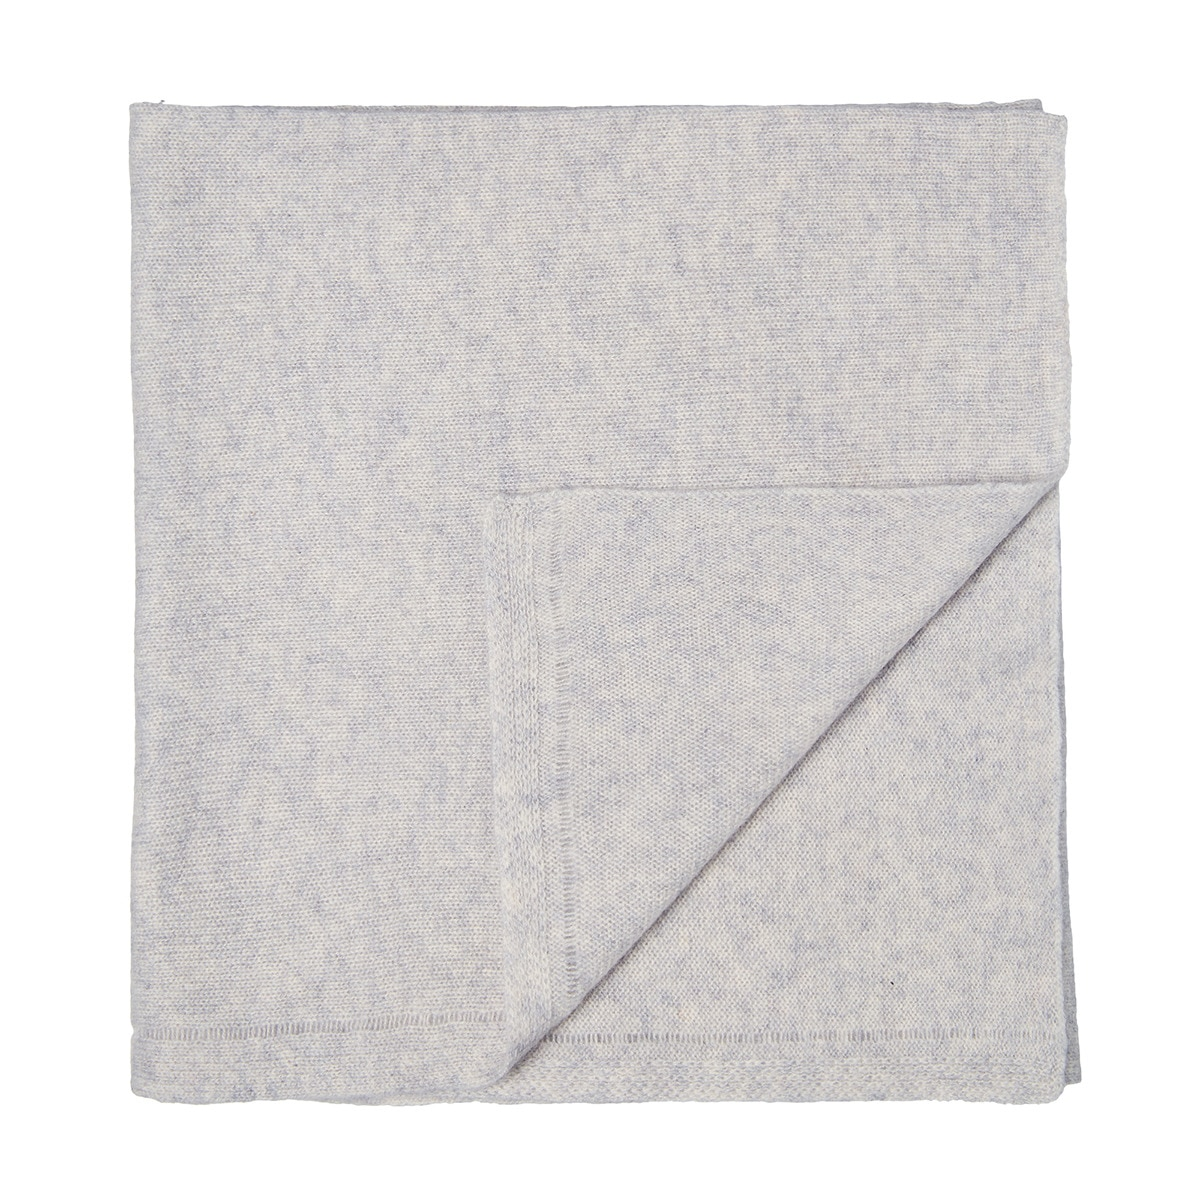 Manta de Minicuna (50 x 80 cm.) Cotton Juice Baby Home 100% Cashmere